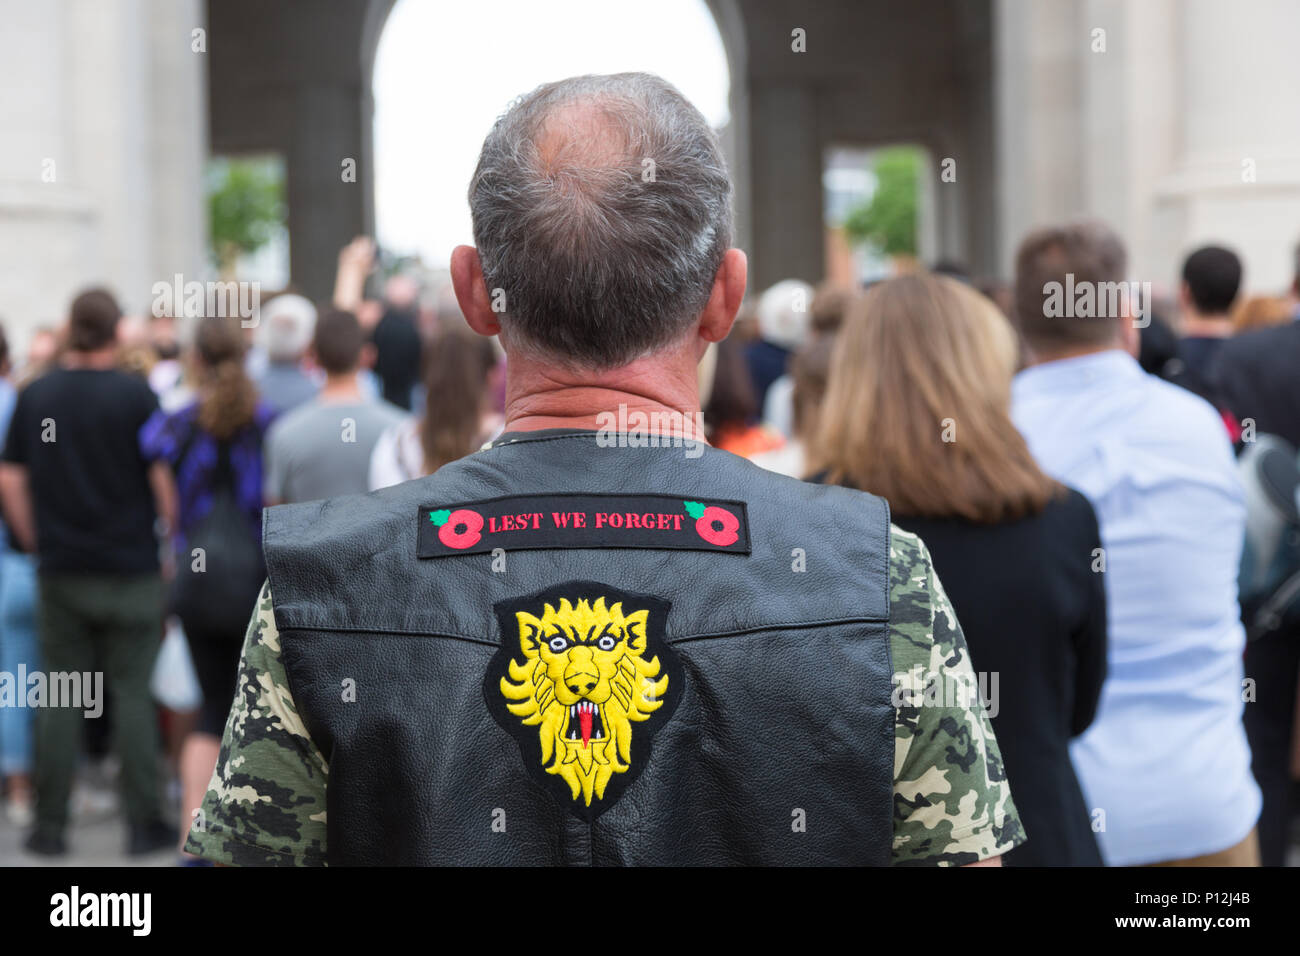 Biker or motorcyclist stands to attention during the daily Menin Gate ceremony, Ypres, Belgium - Stock Image